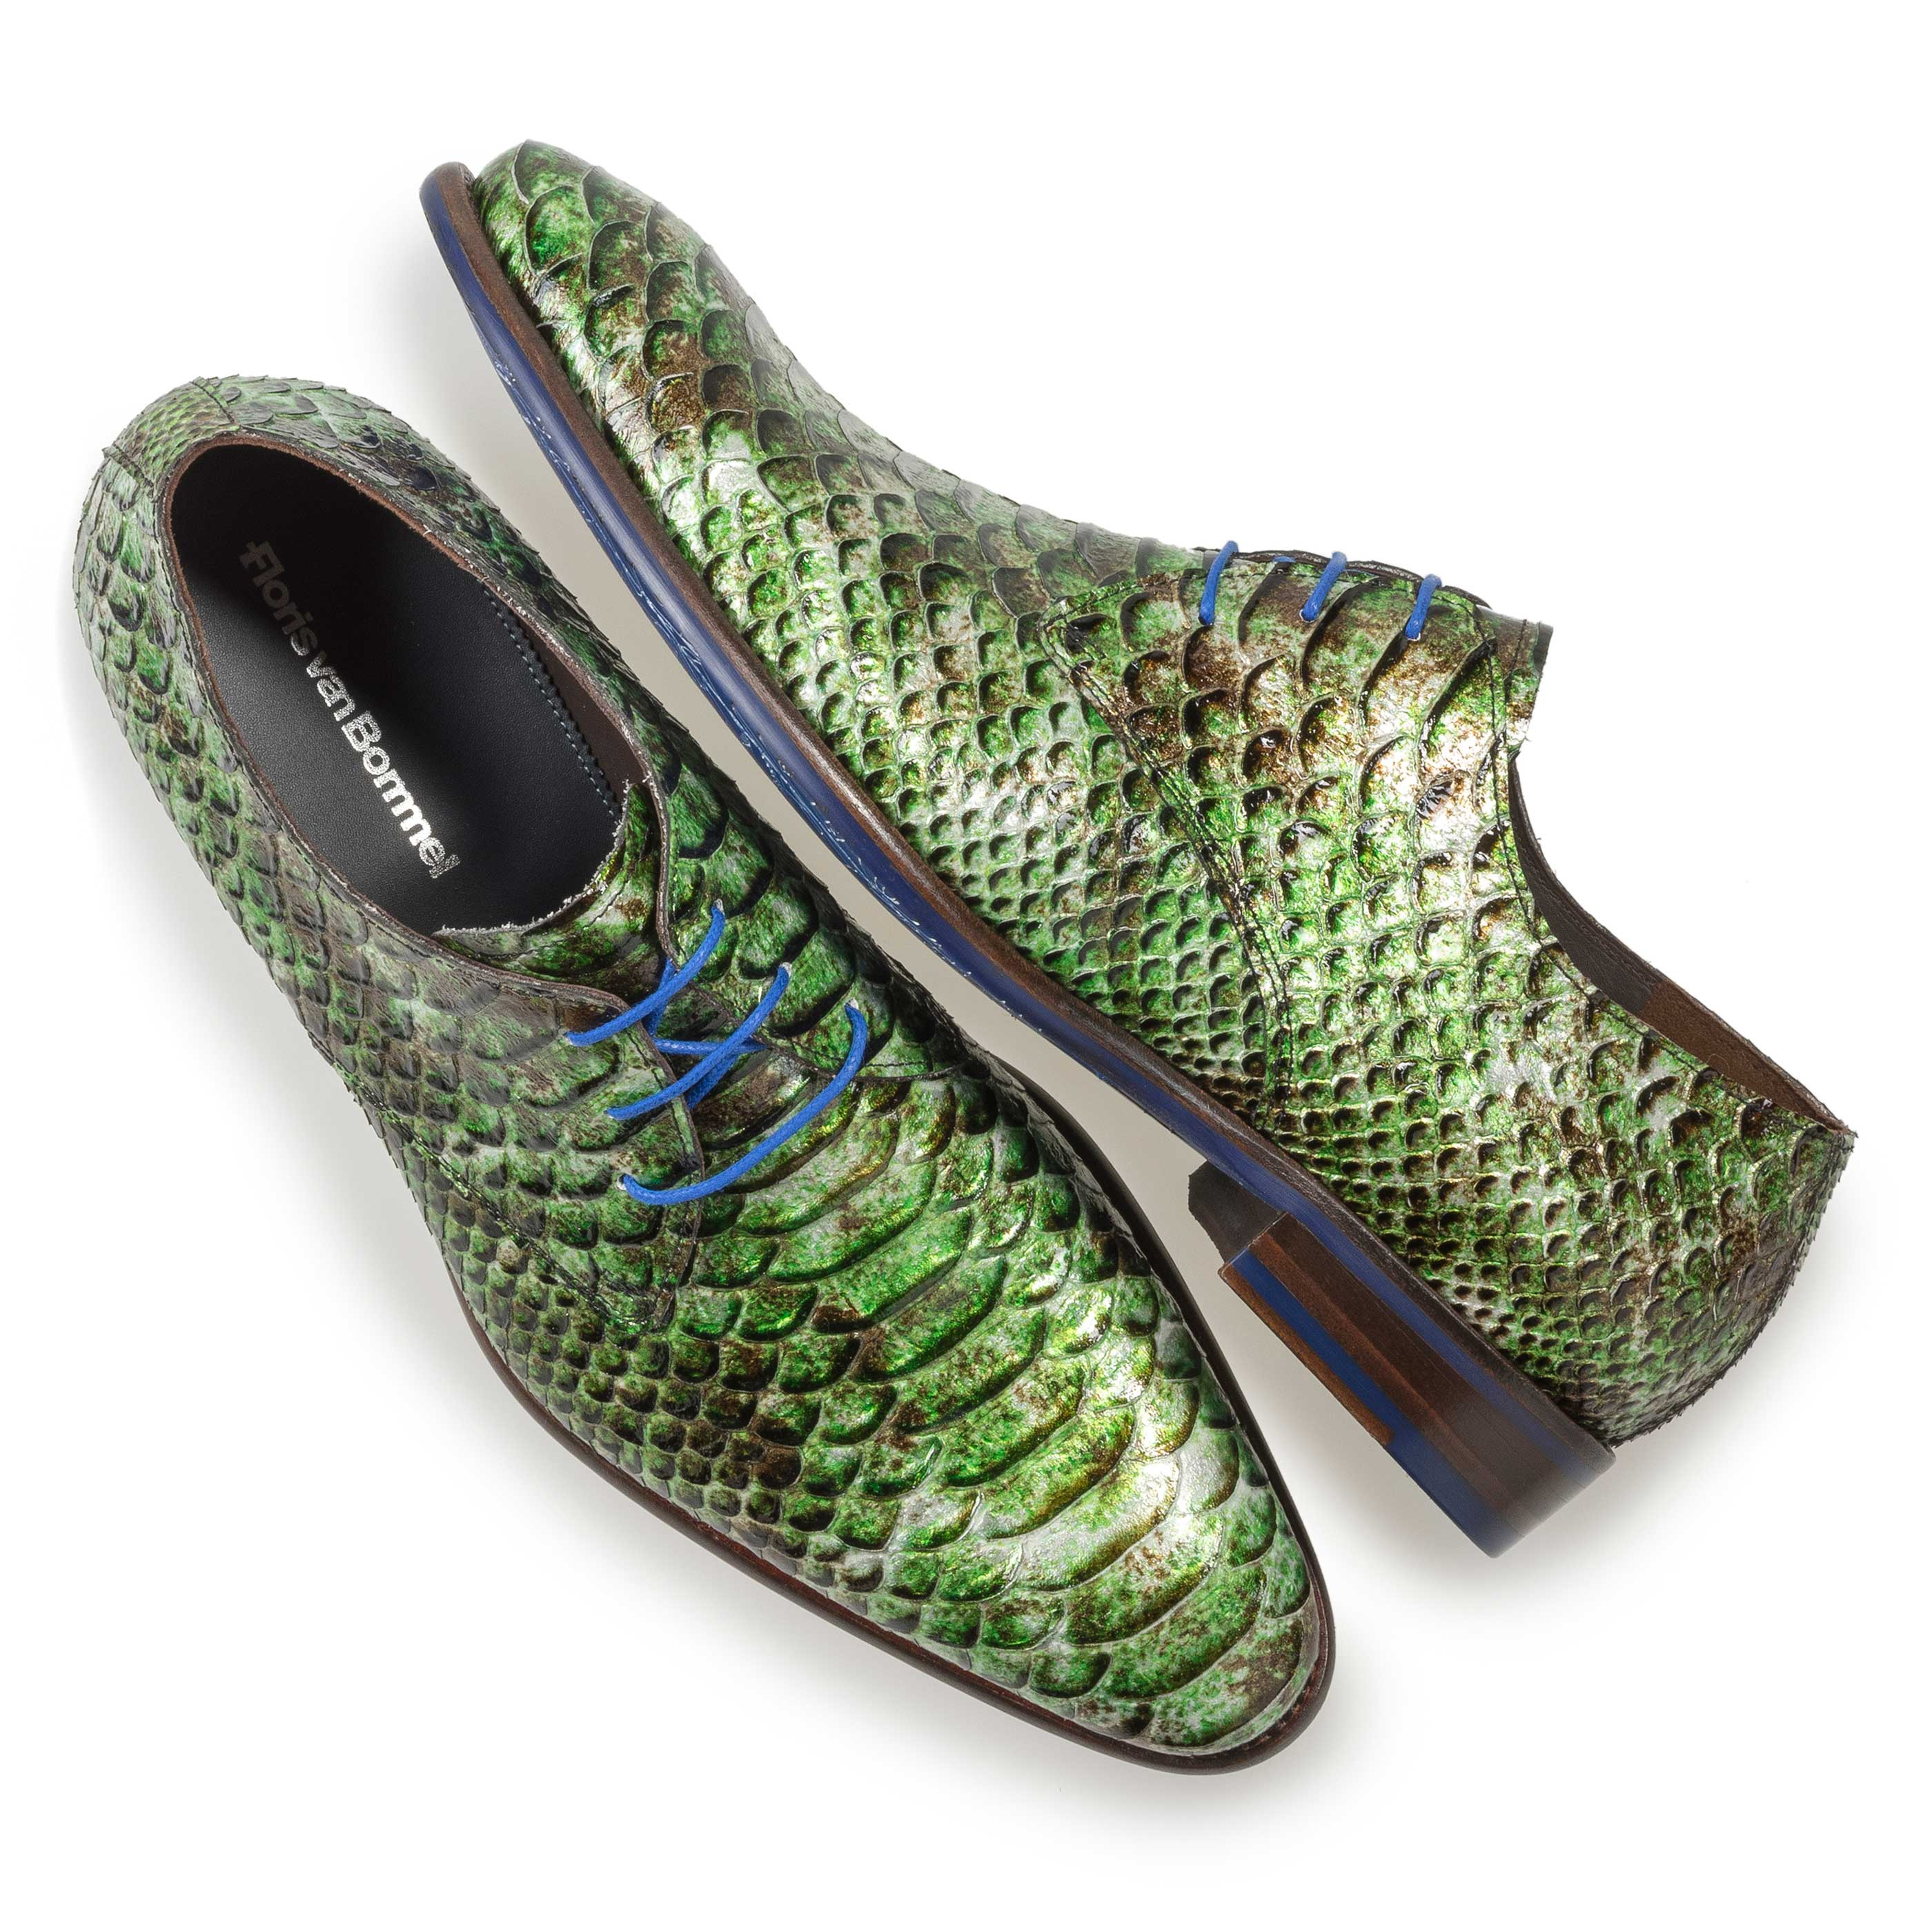 18121/01 - Green patent leather snake print lace shoe